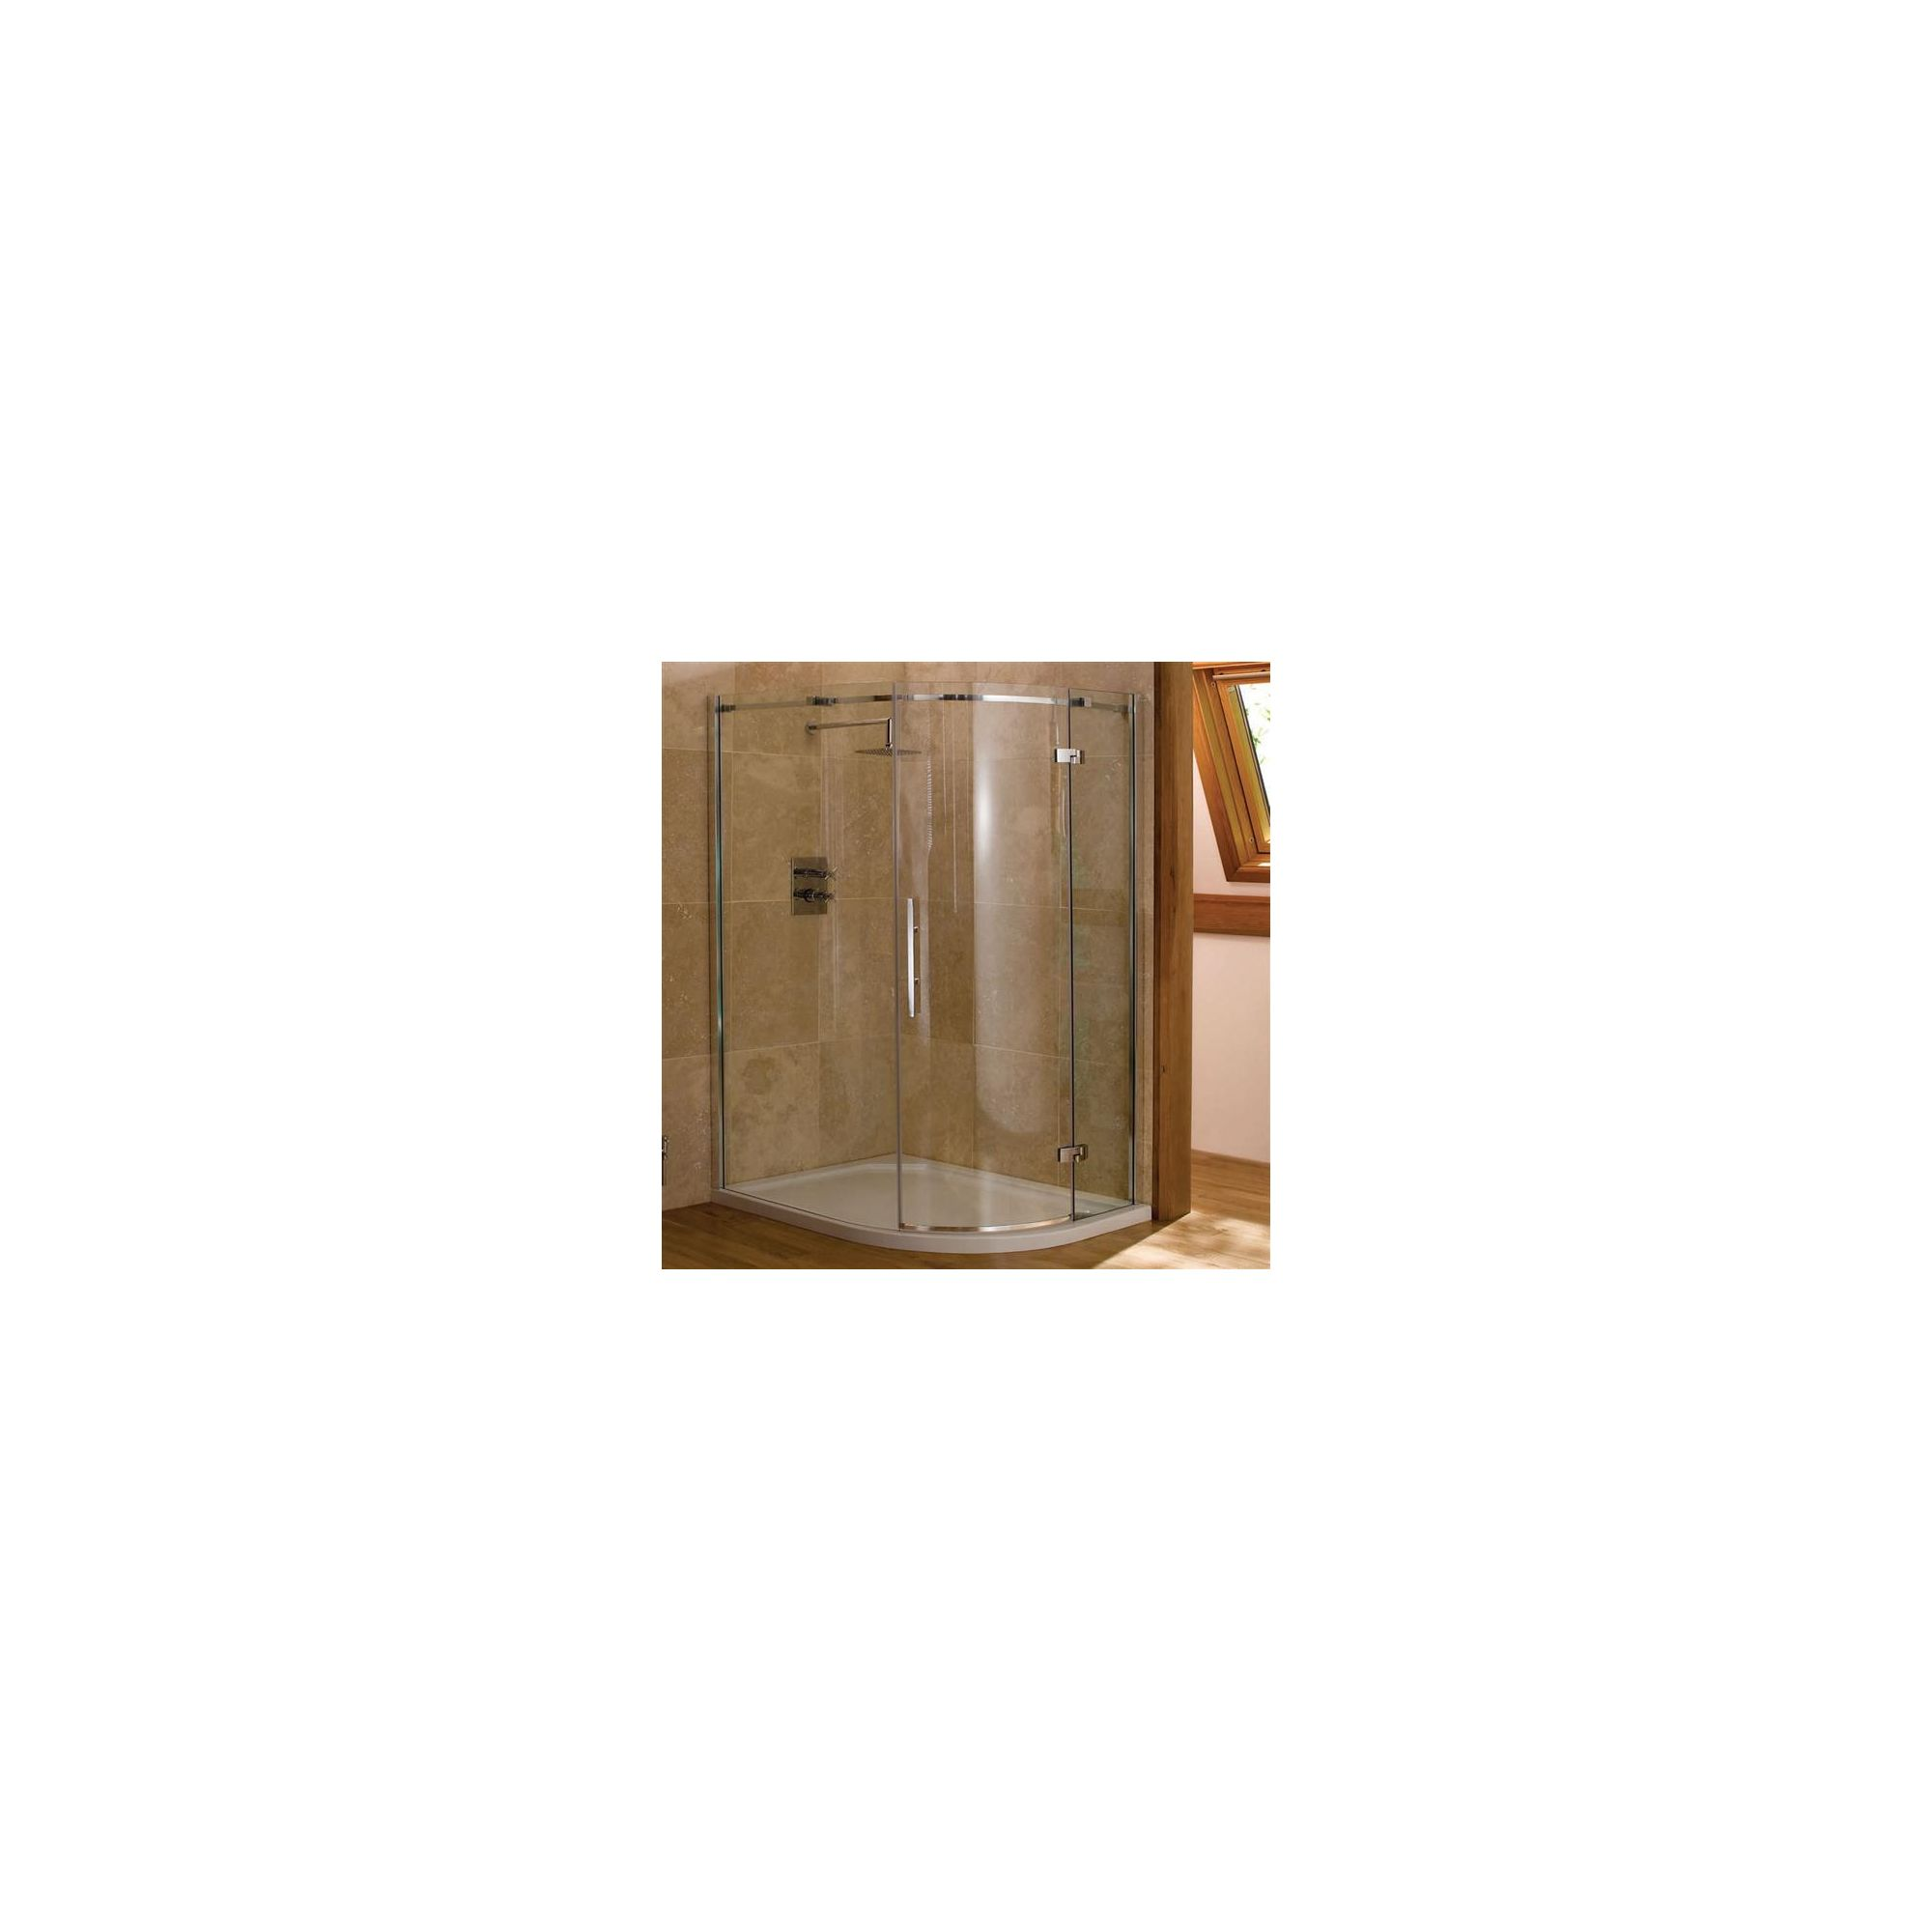 Merlyn Vivid Nine Offset Quadrant Shower Enclosure, 1200mm x 900mm, Left Handed, Low Profile Tray, 8mm Glass at Tesco Direct